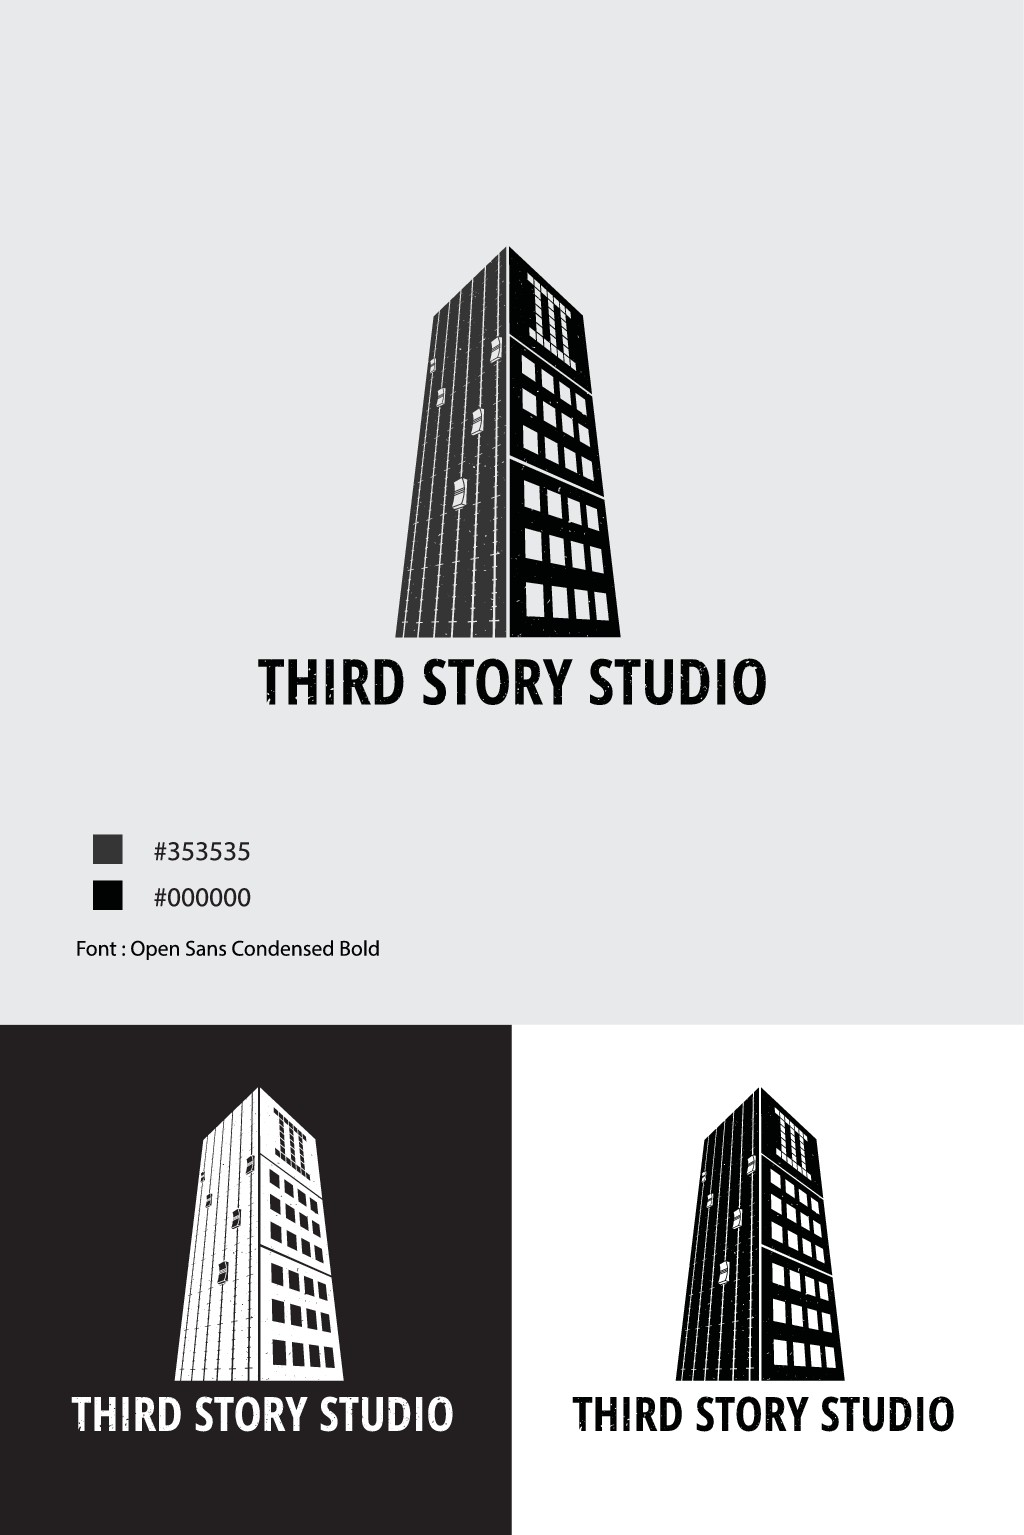 Need a 2 color flat logo for a recording studio located on the third story